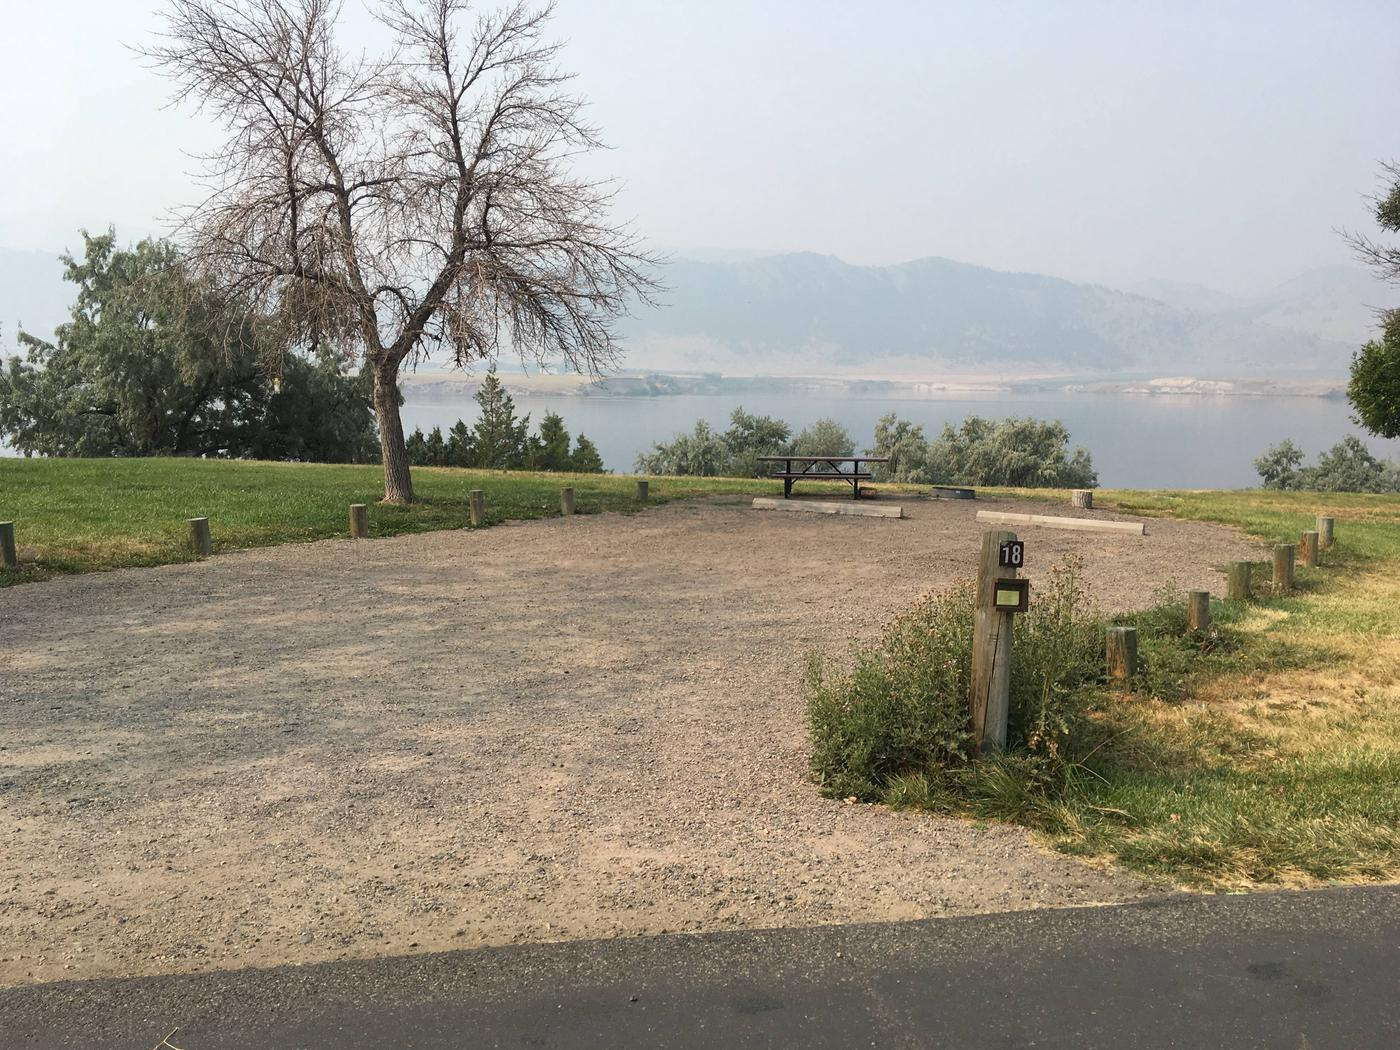 Site 18 BLM Holter Lake Campground. Lakeside campsite. Graveled campsite with picnic table and fire pit. Trees dispersed throughout campground.Site 18 BLM Holter Lake Campground